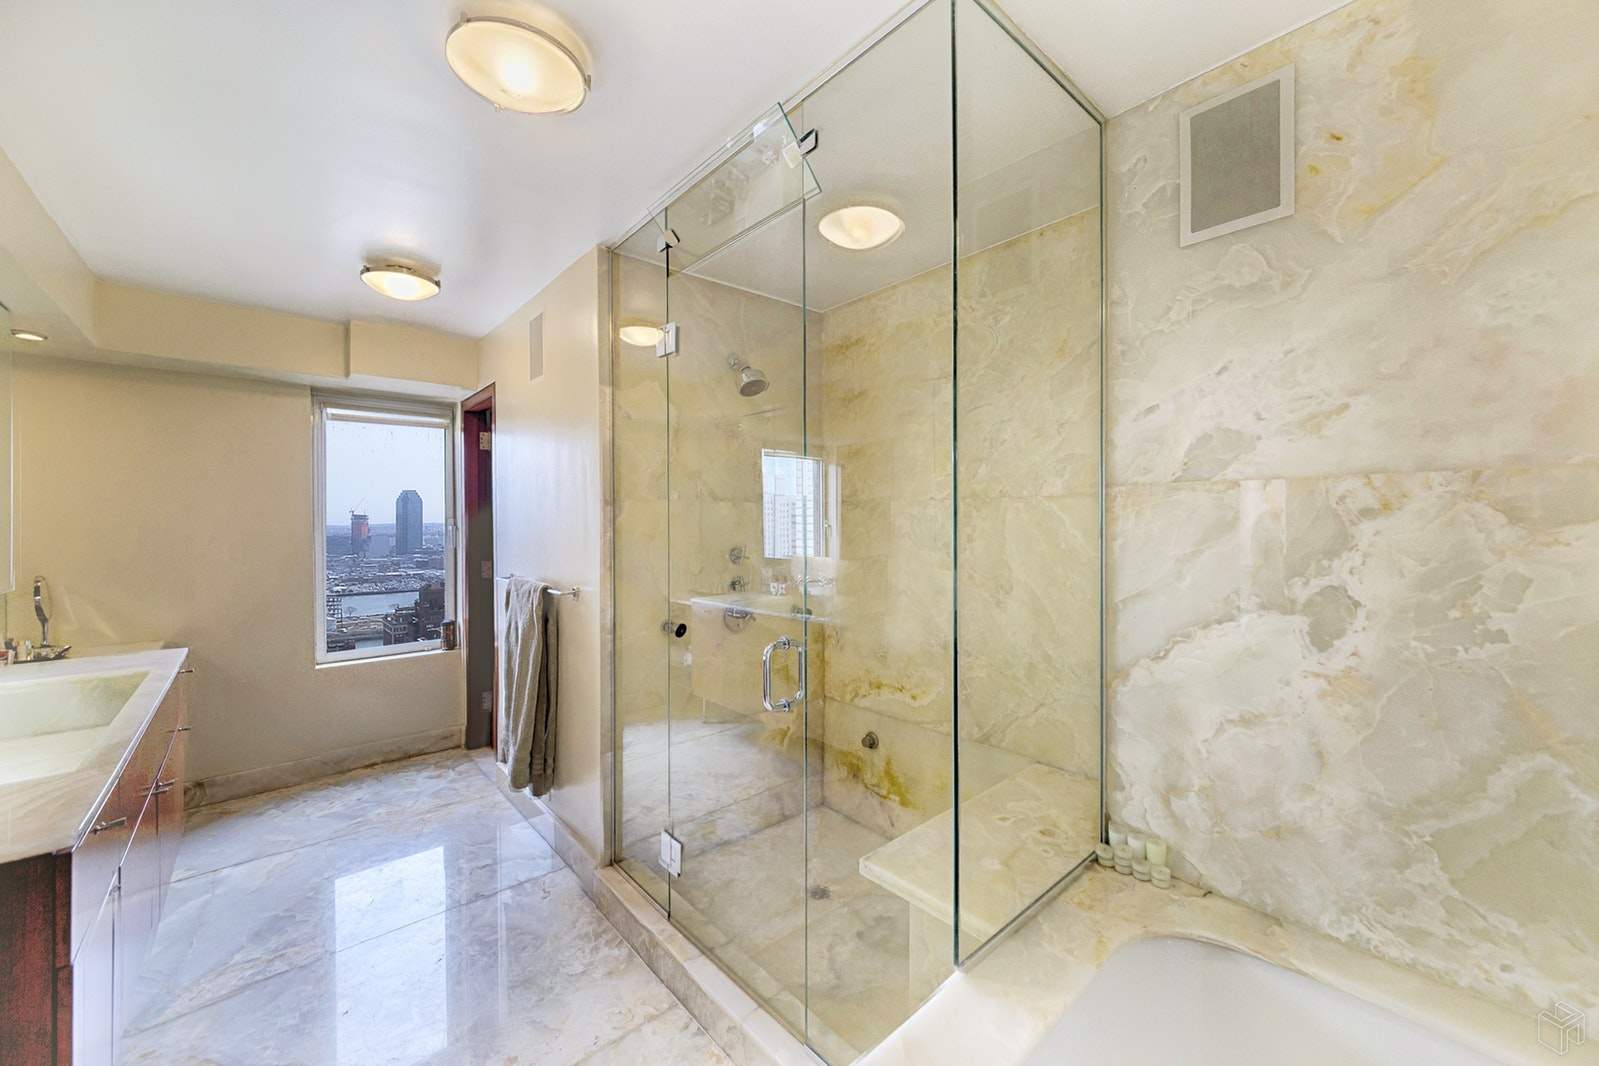 303 East 57th Street 34g, Midtown East, NYC, 10022, $2,500,000, Property For Sale, Halstead Real Estate, Photo 7